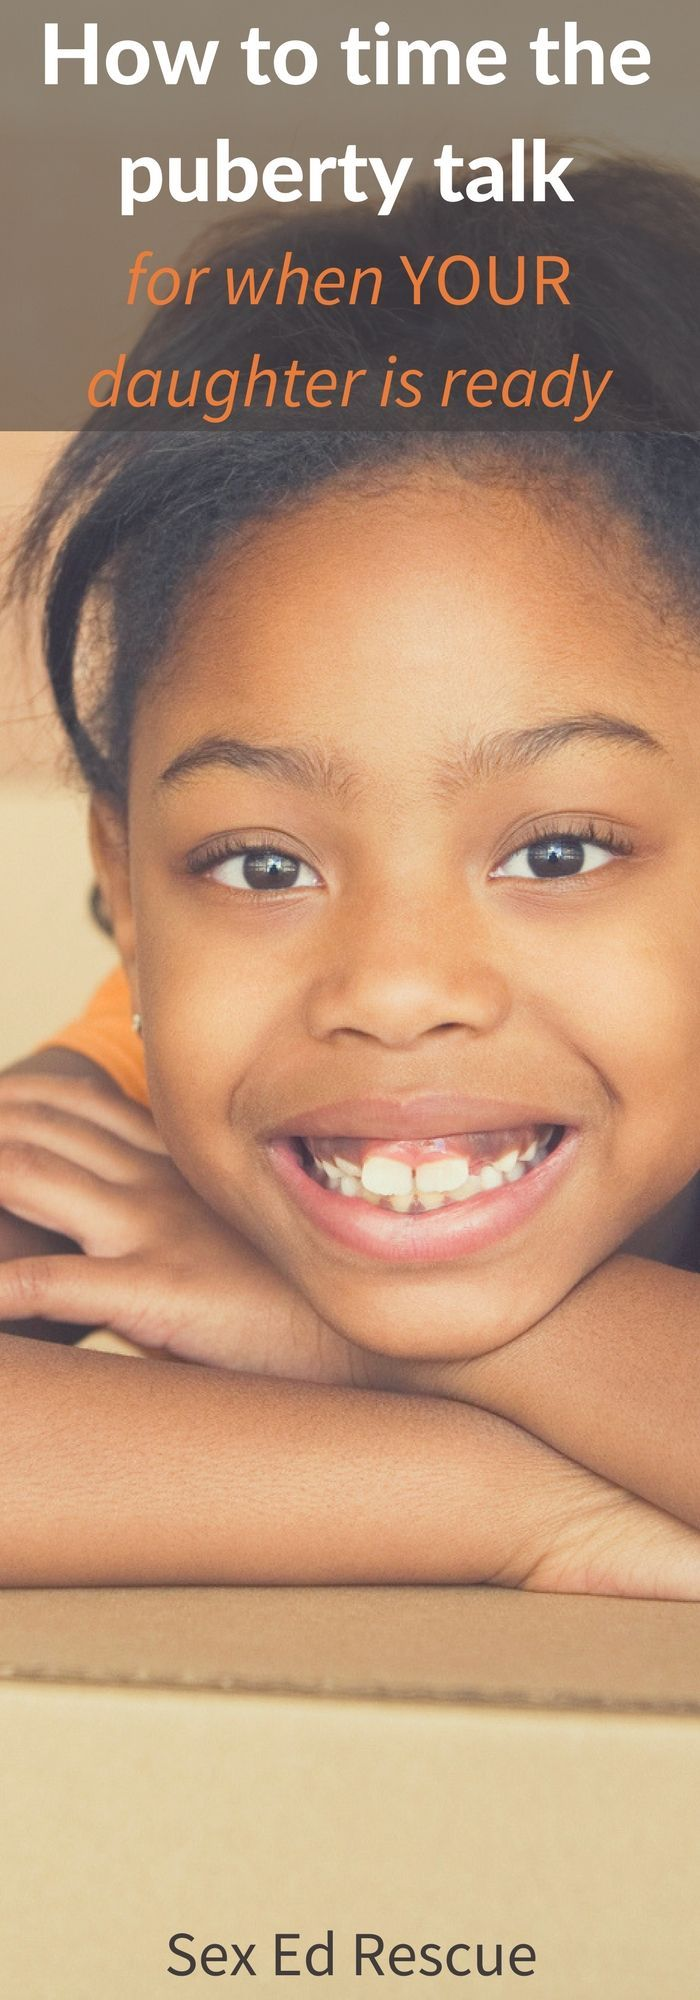 By looking out for the first signs of puberty in girls, parents can be prepared and start talking to their daughters about puberty before it is too late.